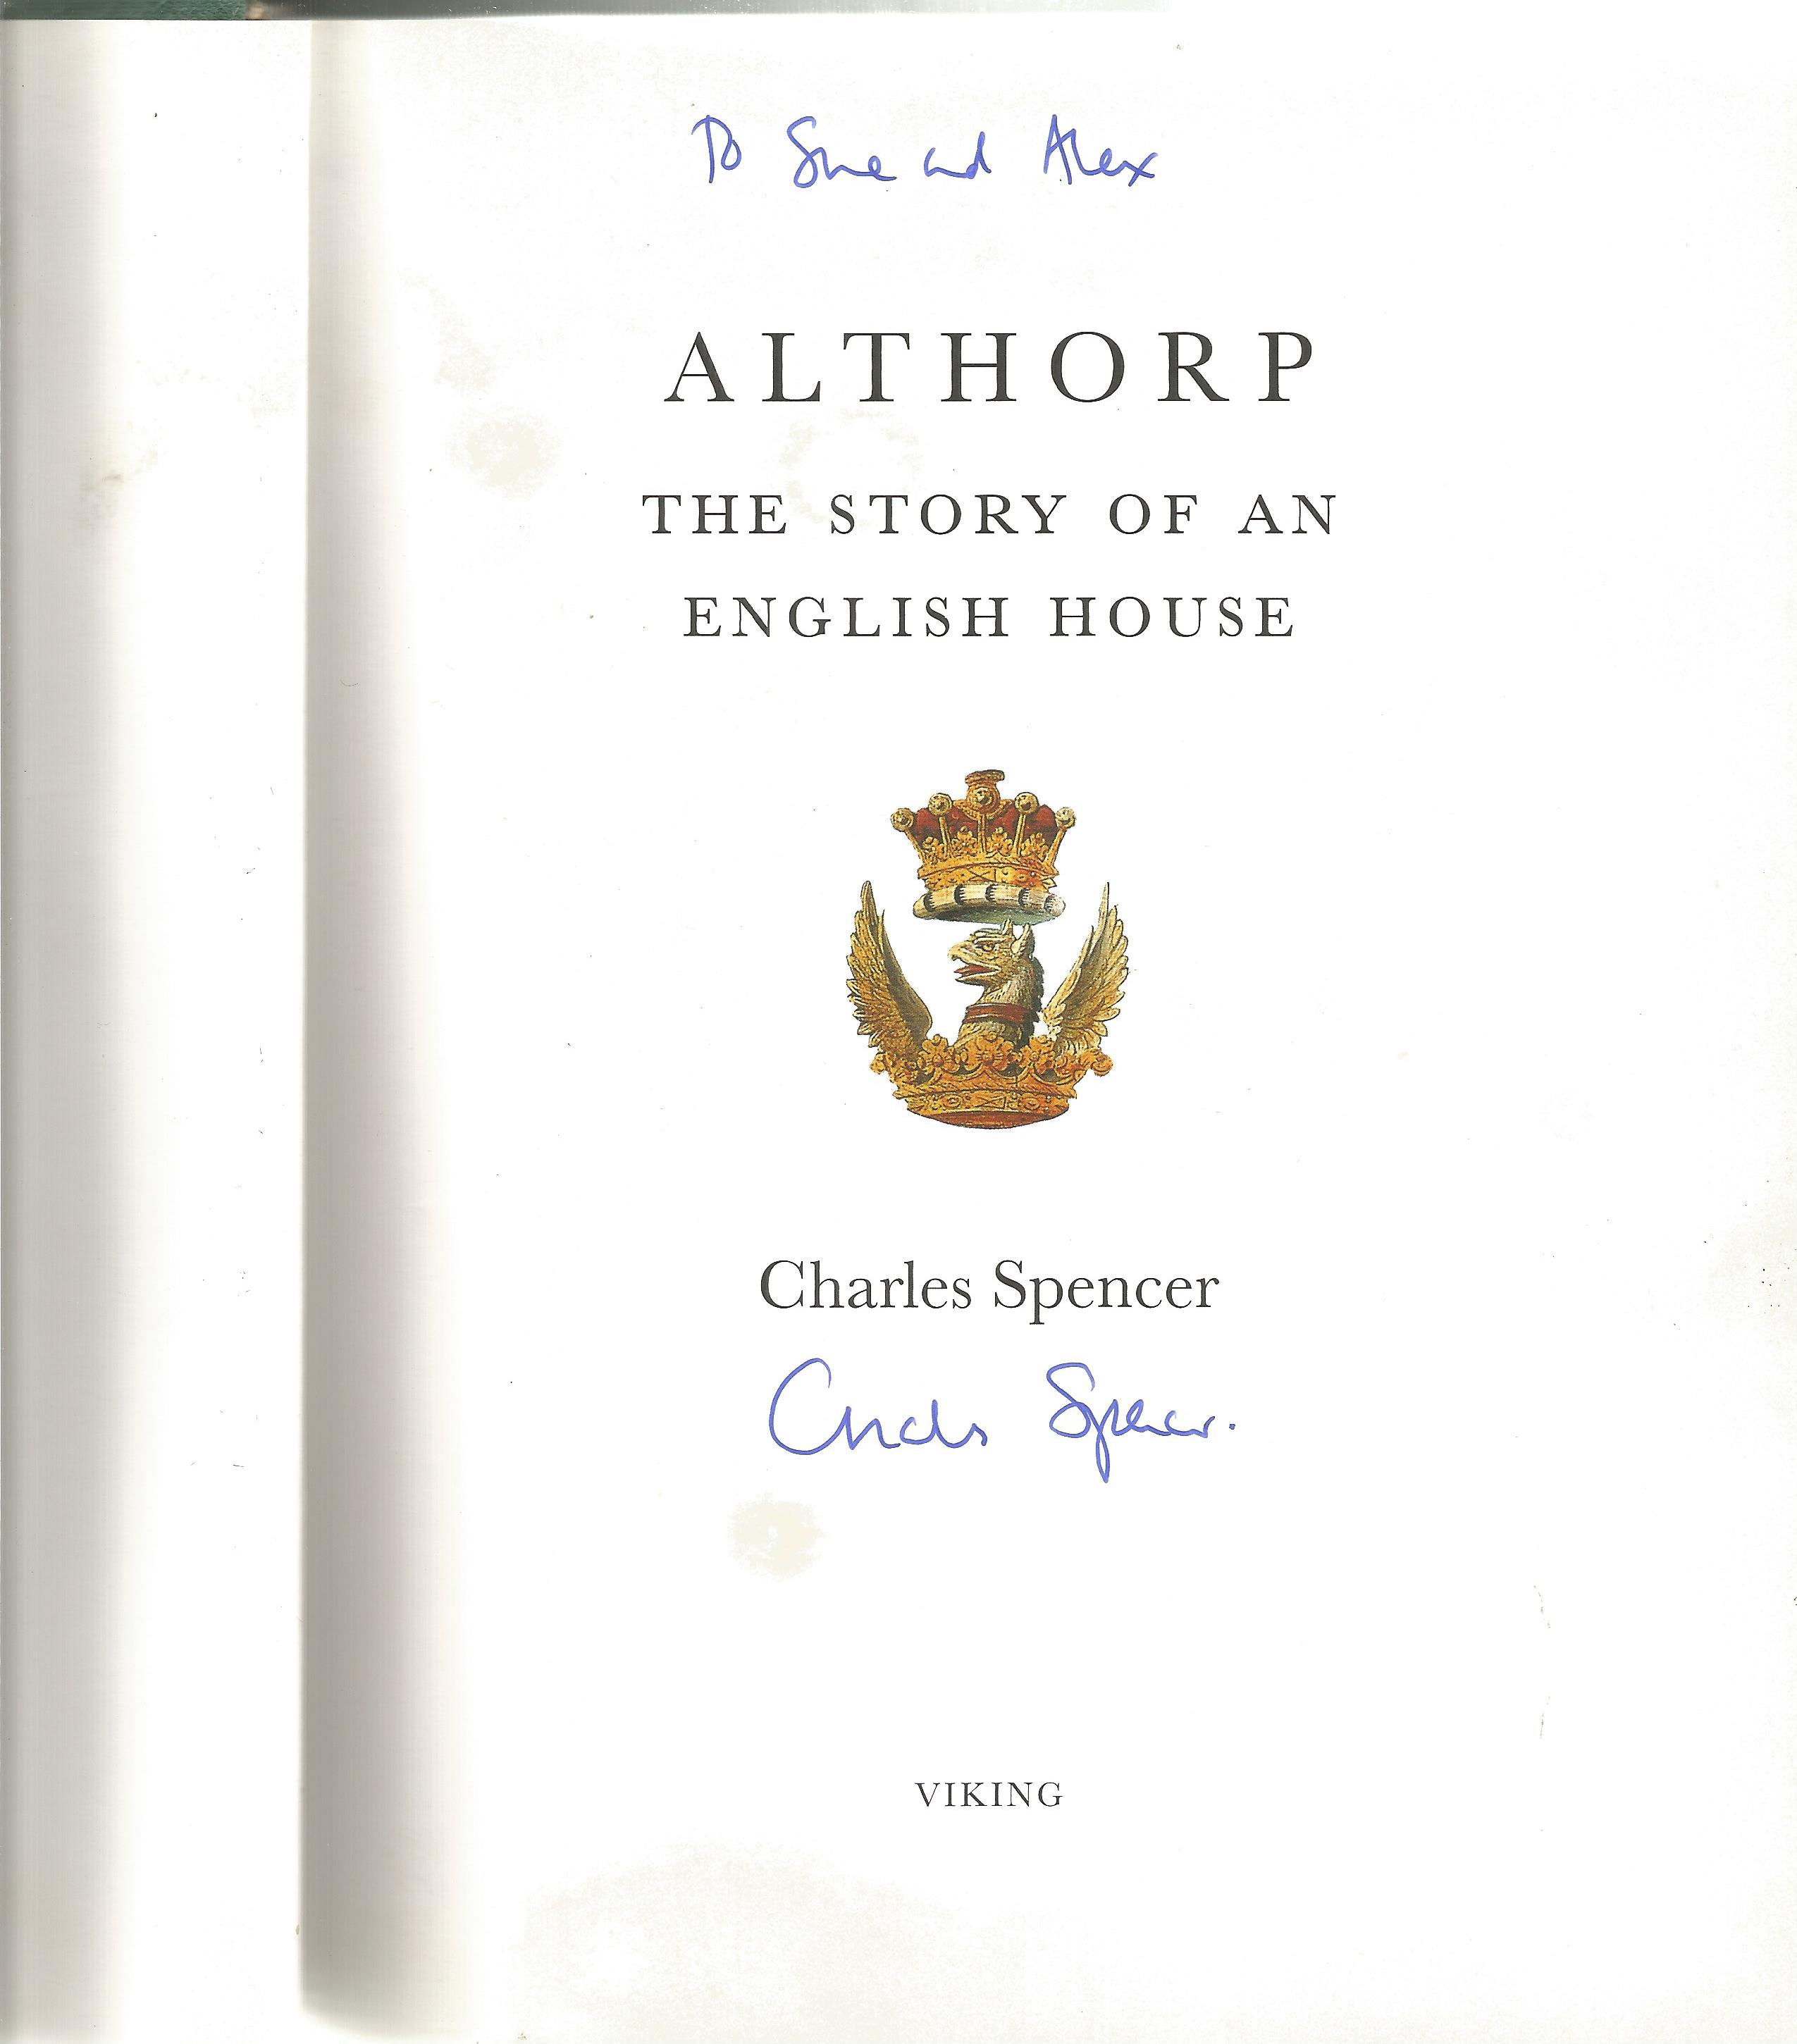 Charles Spencer Hardback Book The Story of an English House signed by the Author on the Title Page - Image 2 of 2